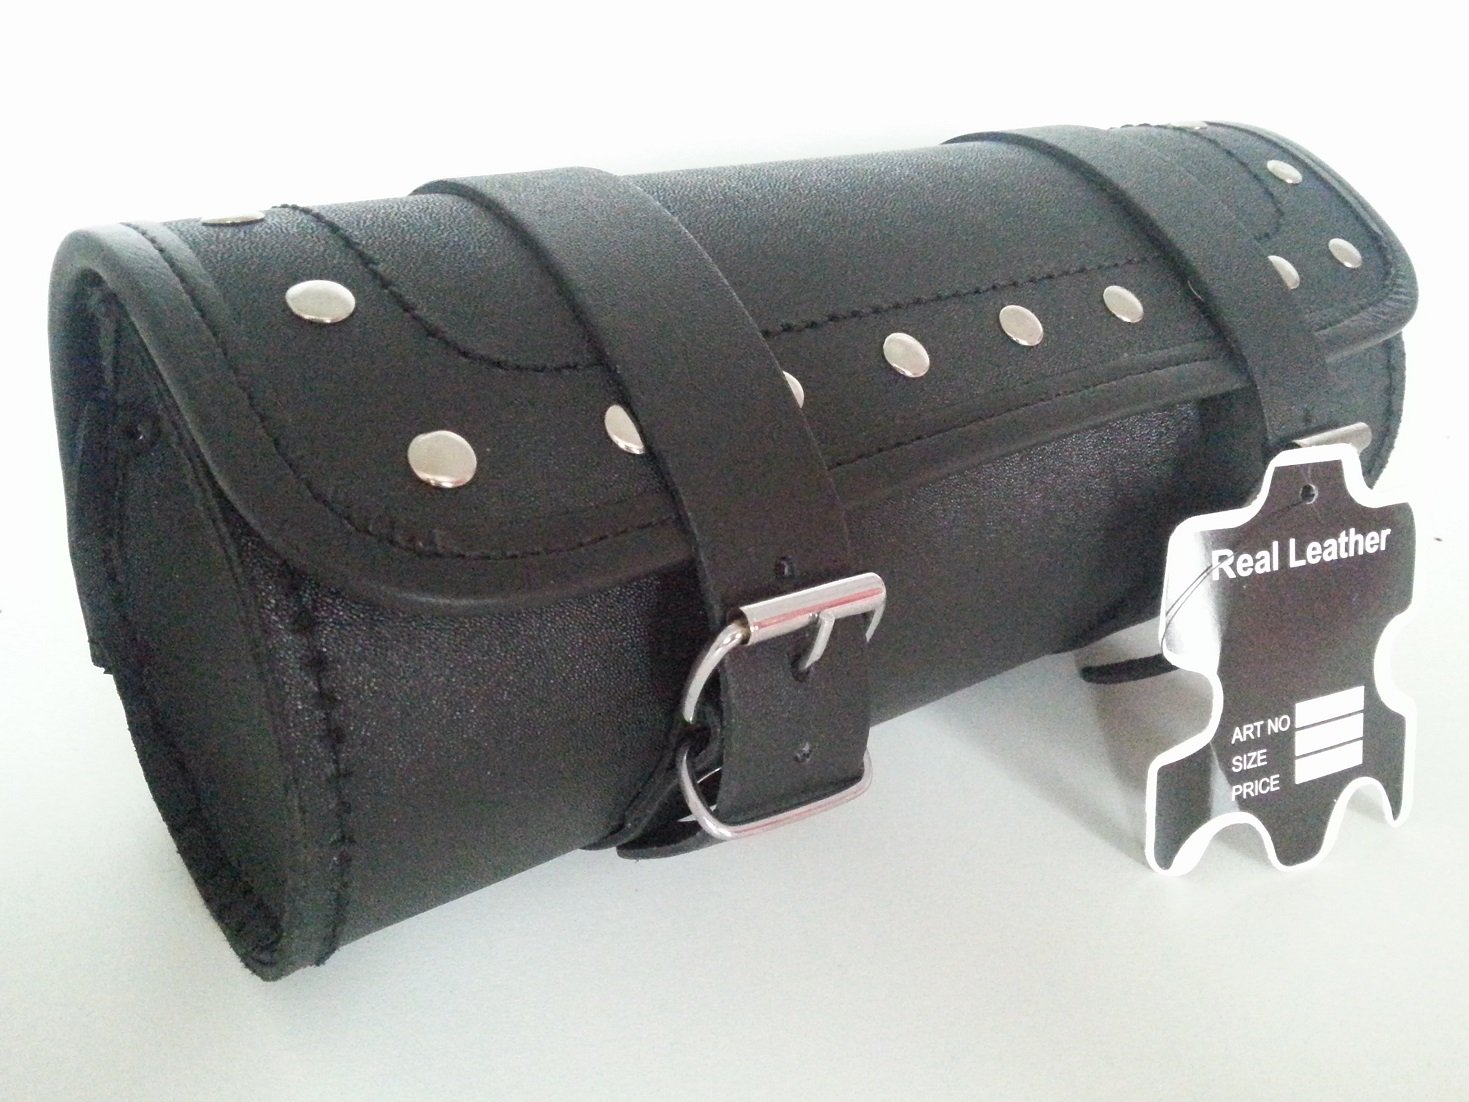 ukshopsite Motorcycle Motorbike Genuine Leather Tool Roll Saddle Bag TR7